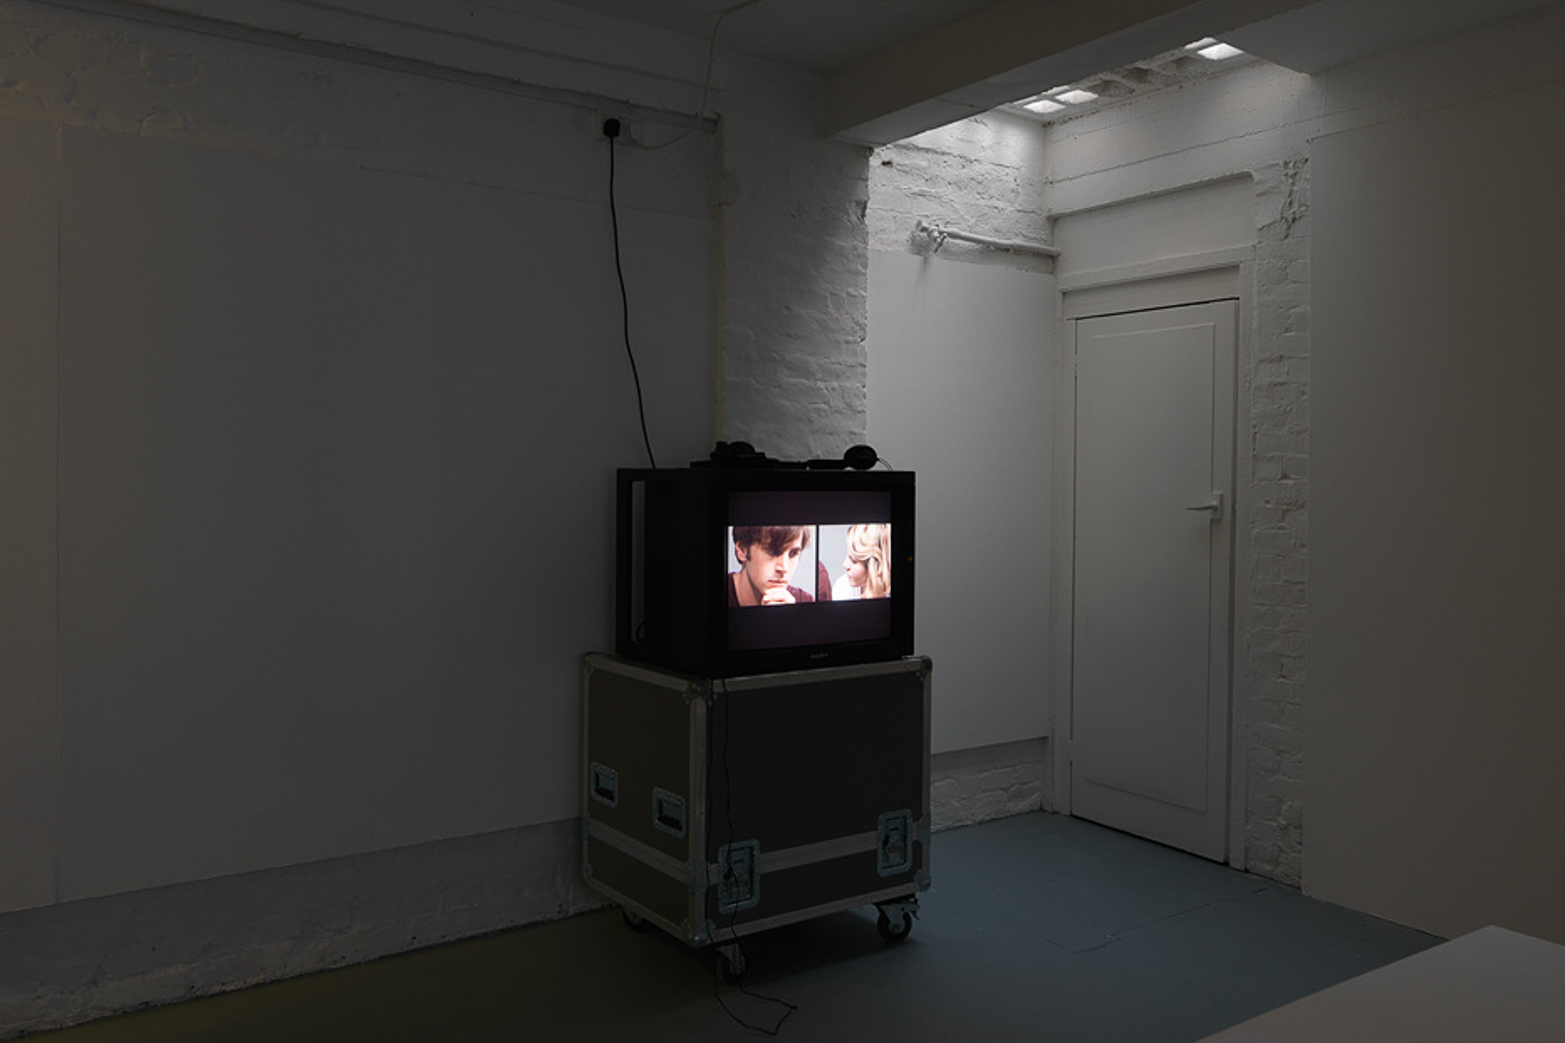 Anja Kirschner and David Panos, Living Truthfully Under Imaginary Circumstances. Courtesy of Hollybush Gardens and Tenderpixel.